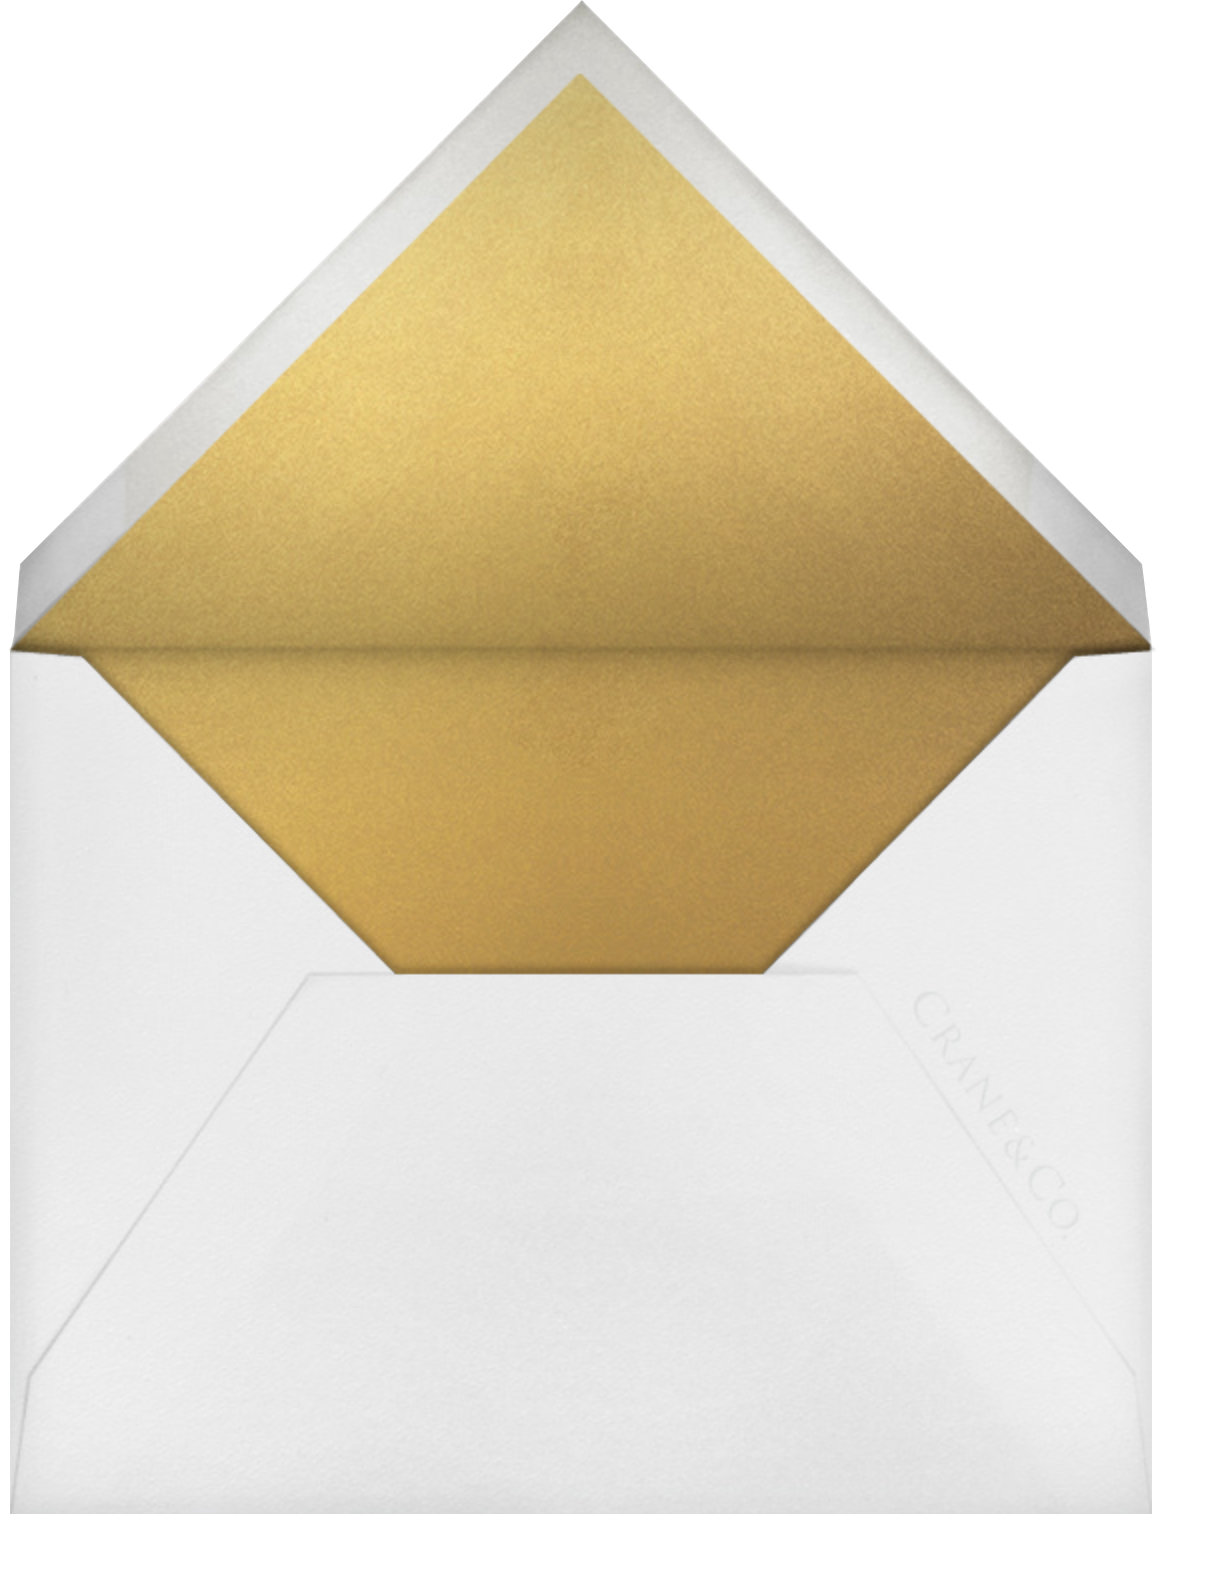 Grace I (Thank You) - Gold - Paperless Post - Personalized stationery - envelope back